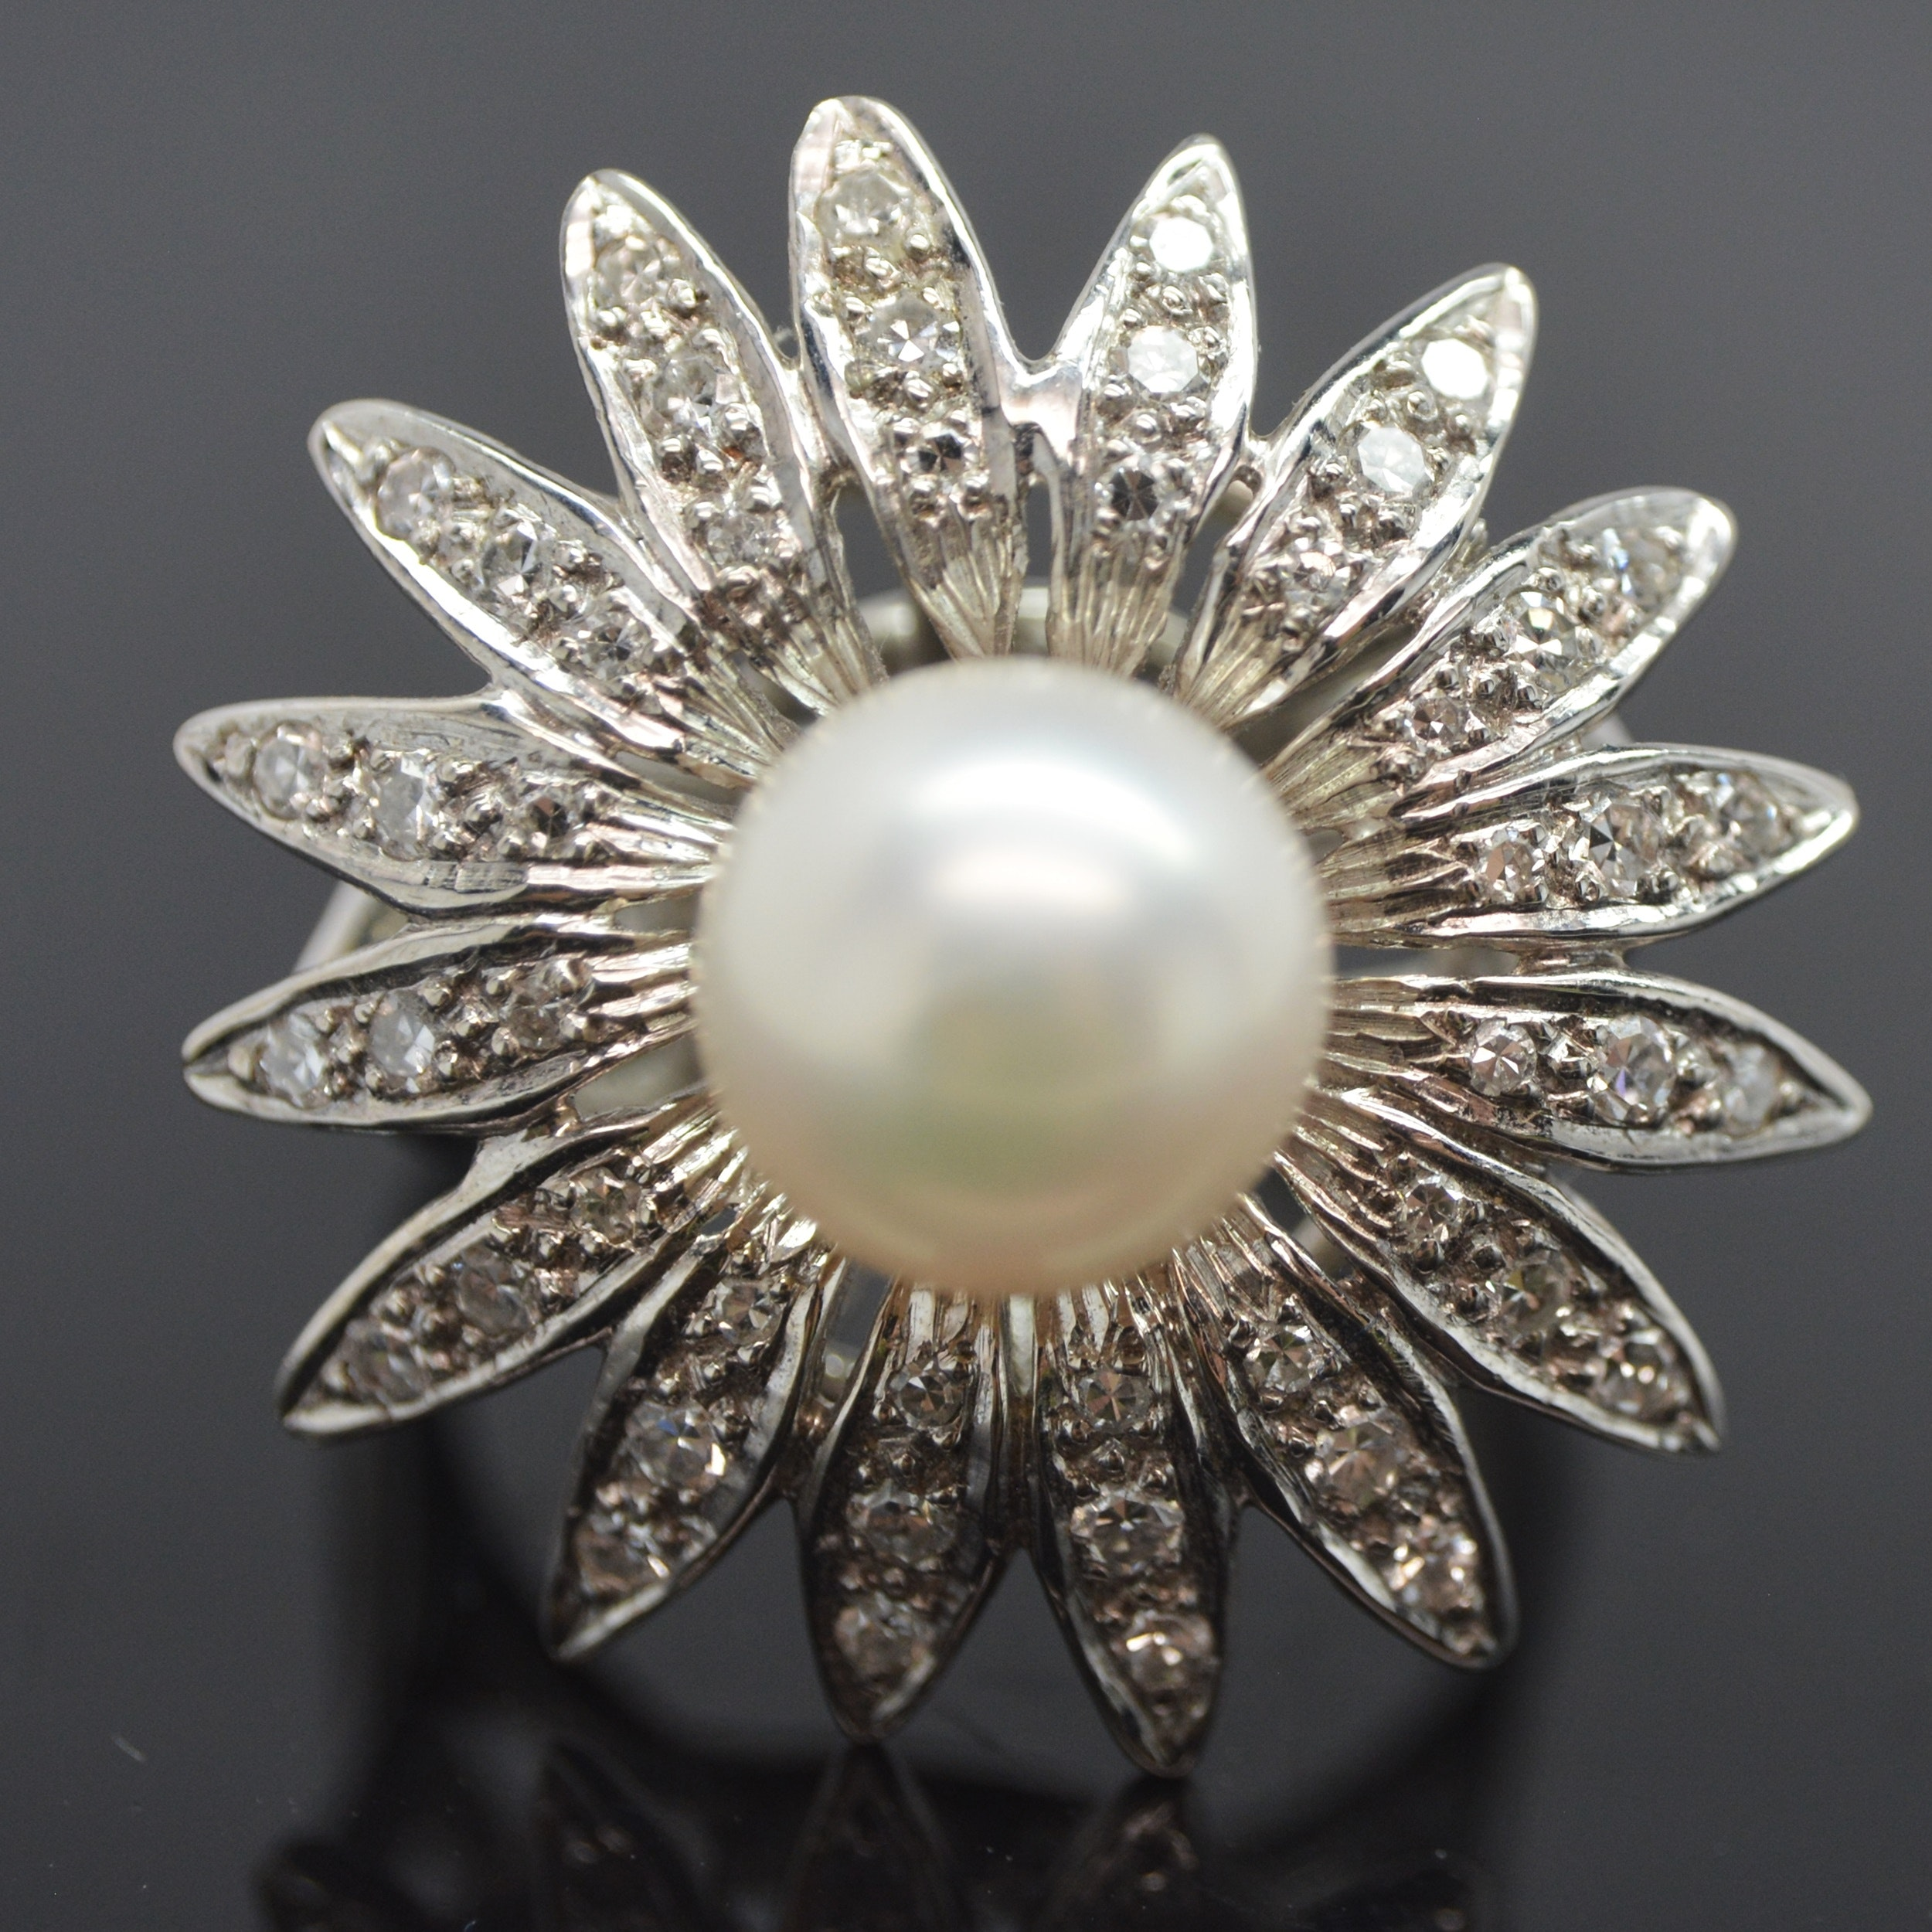 14K White Gold Cultured Pearl and Diamond Floral Ring